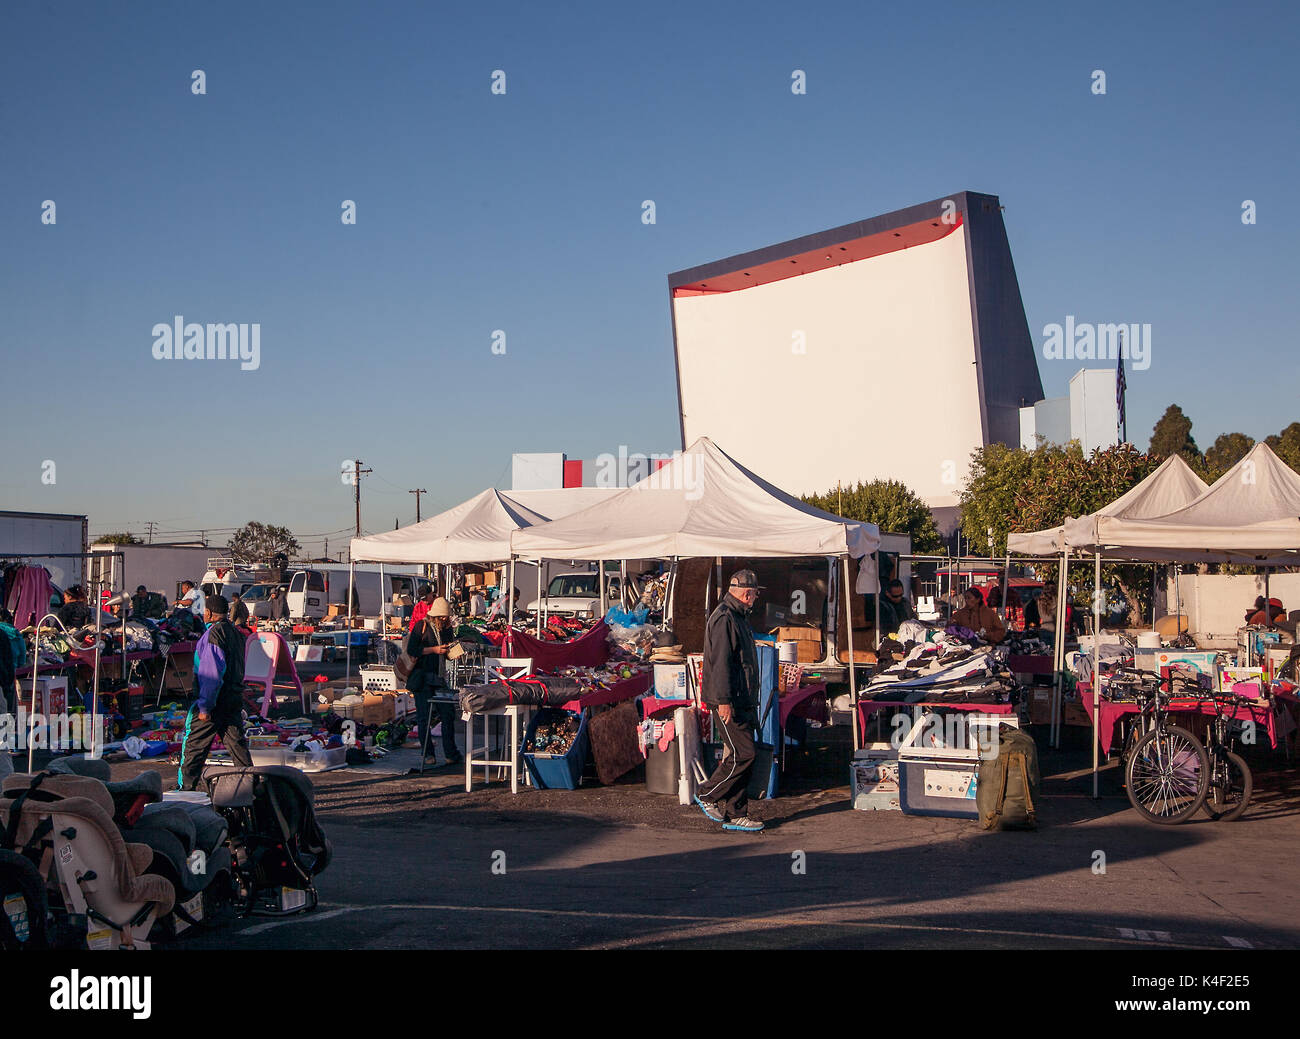 A lot of old drive-in theaters have now beome very popular swap meets to search for antiques collectibles and good old bargains. - Stock Image